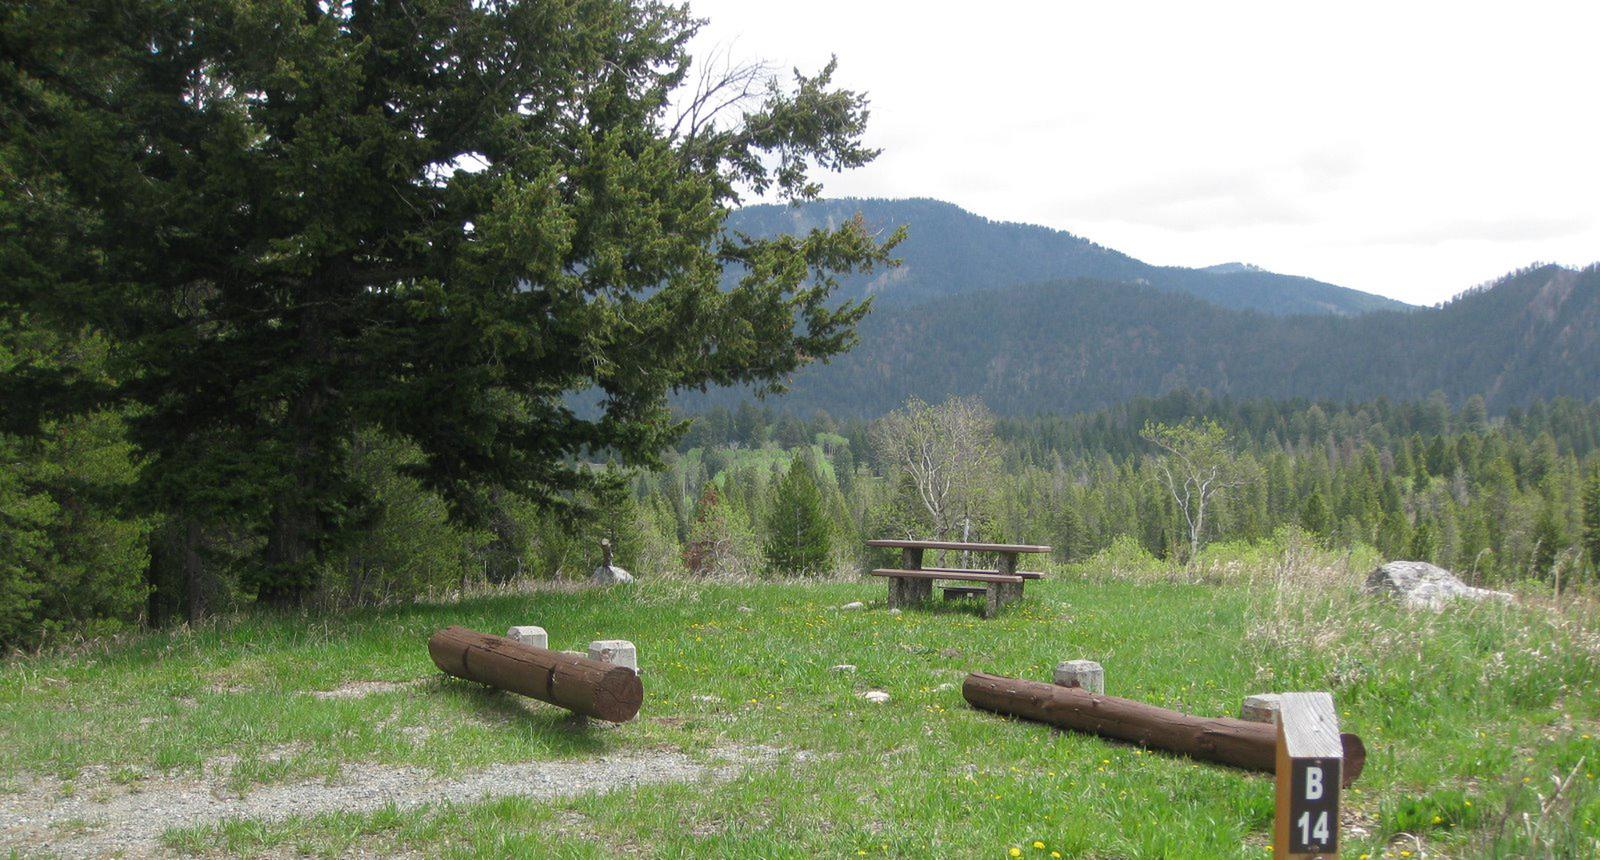 Site B14, campsite surrounded by pine trees, picnic table & fire ringSite B14